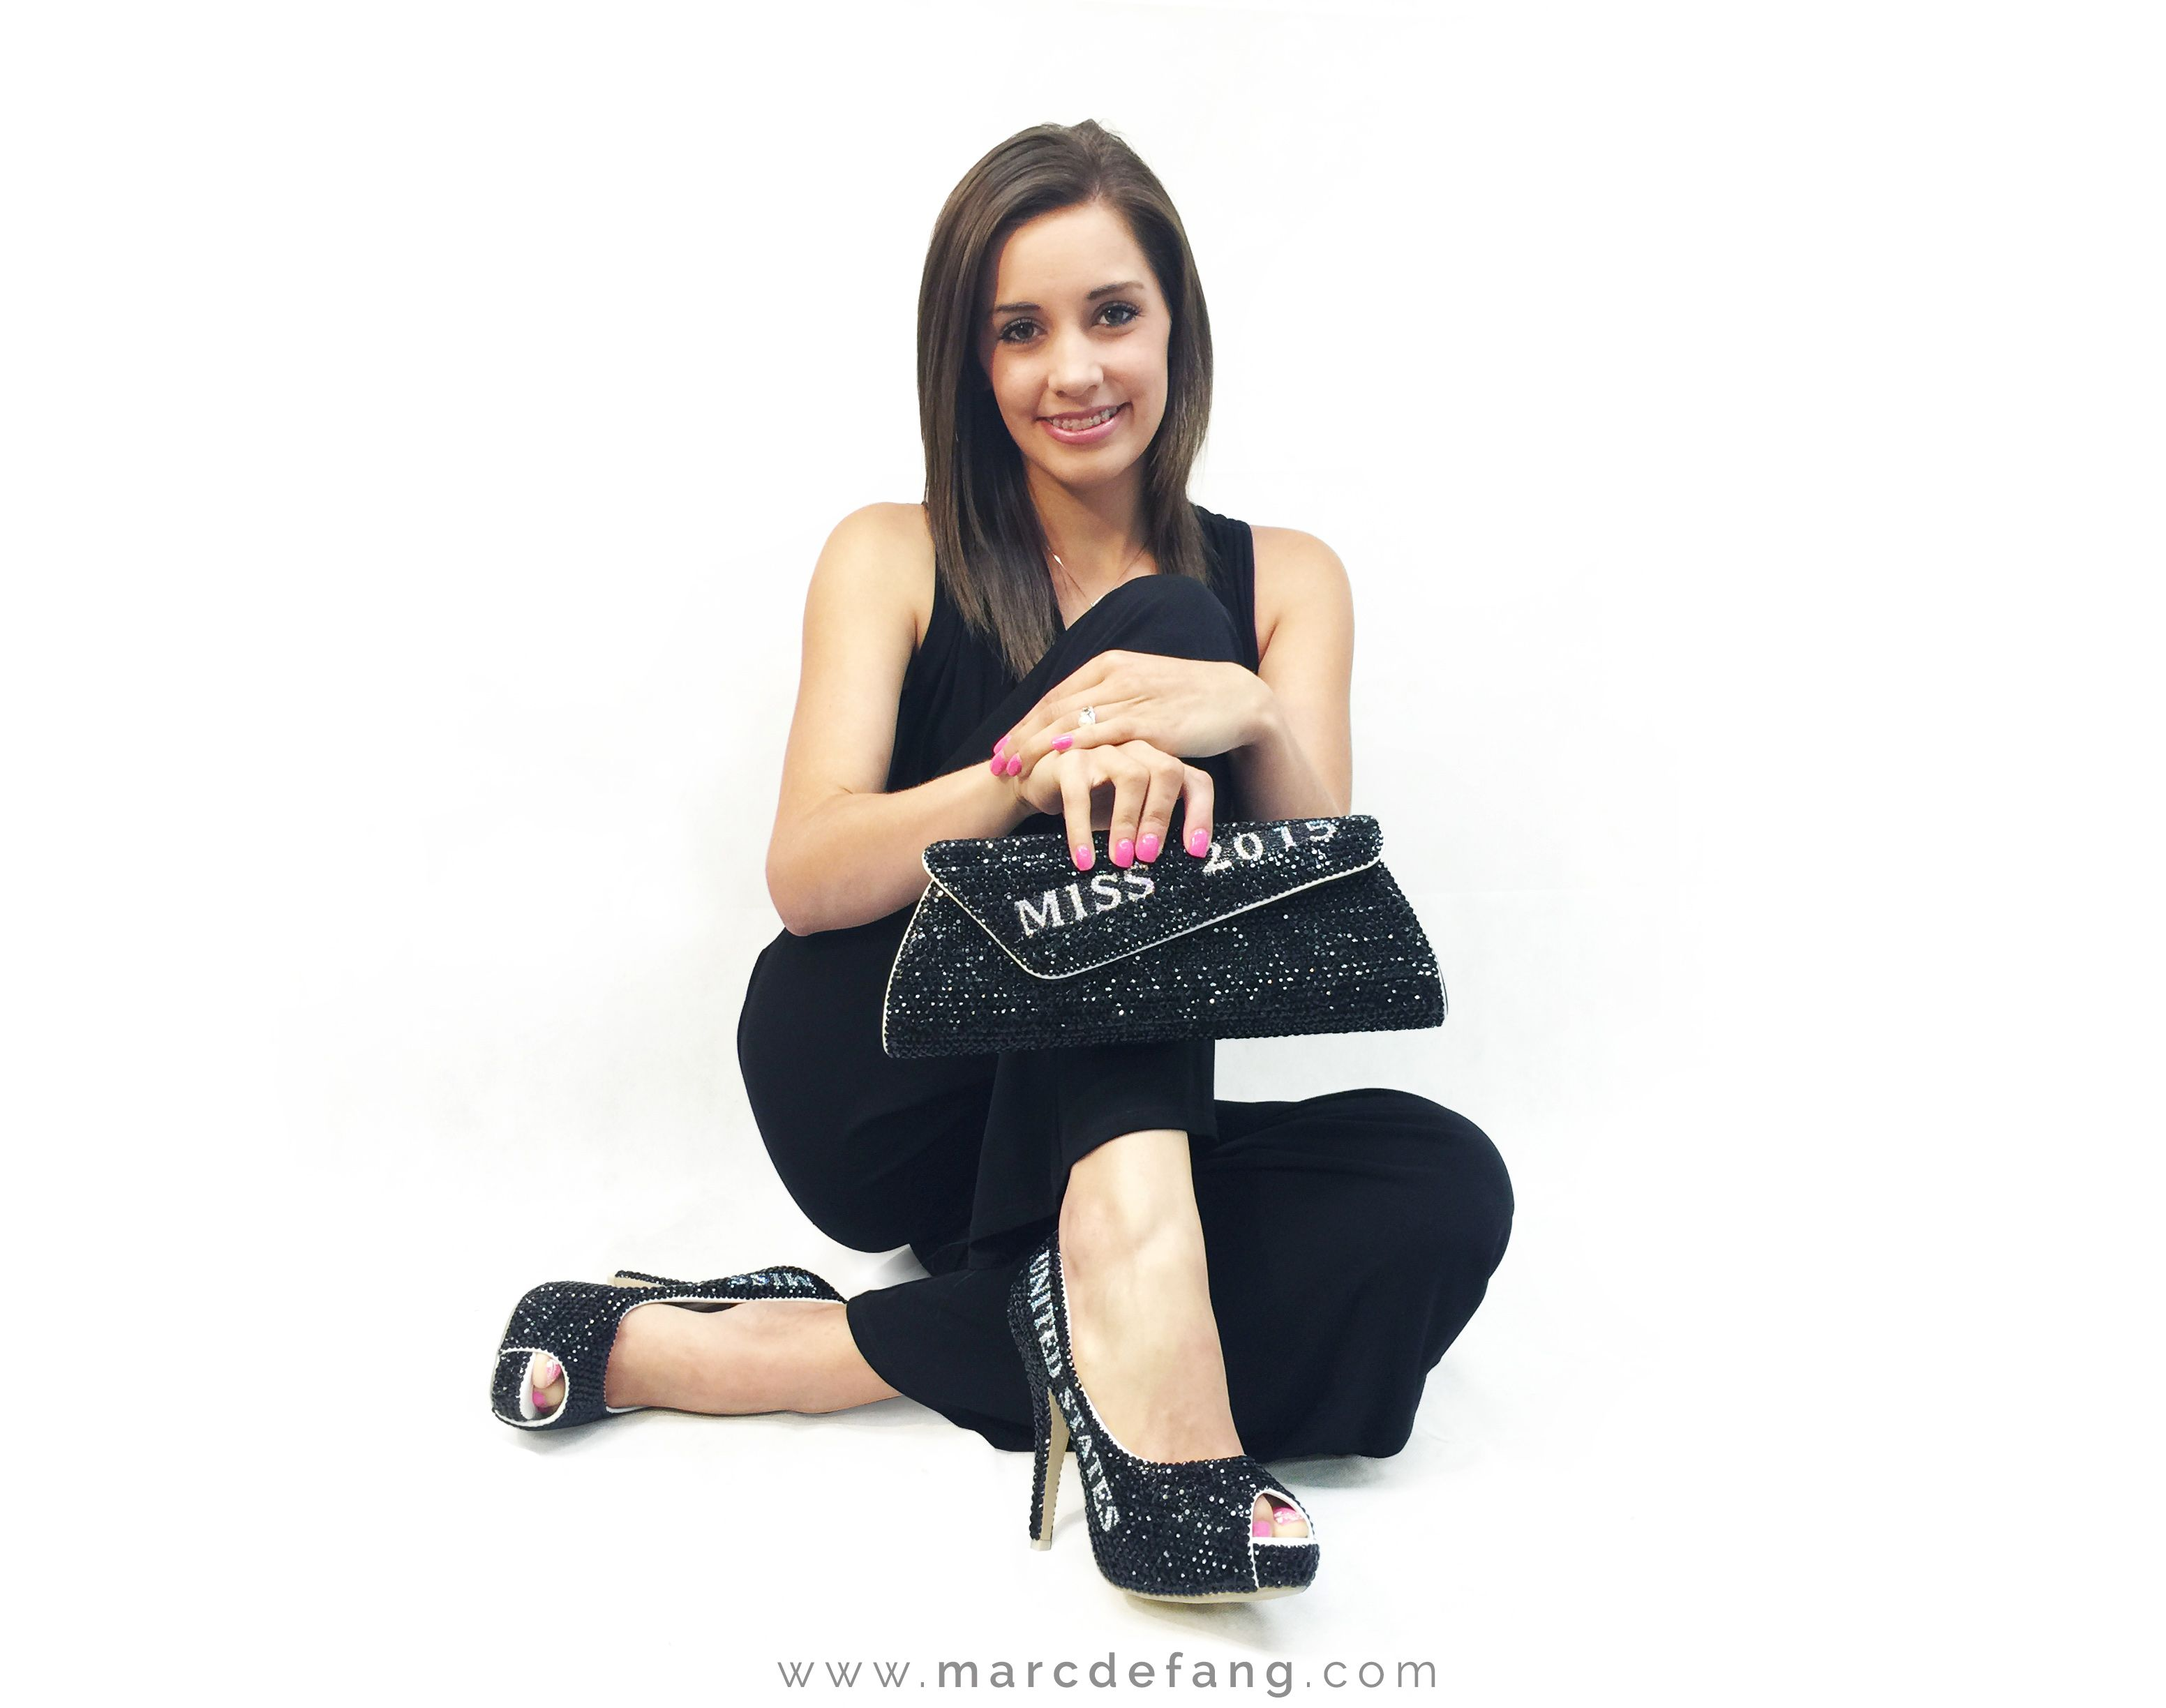 #MarcDefang #latest #New #JetBLACK #Crystal #Pageant #Title #Shoes #heels and #Purse http://www.marcdefang.com/pageant-ladies/